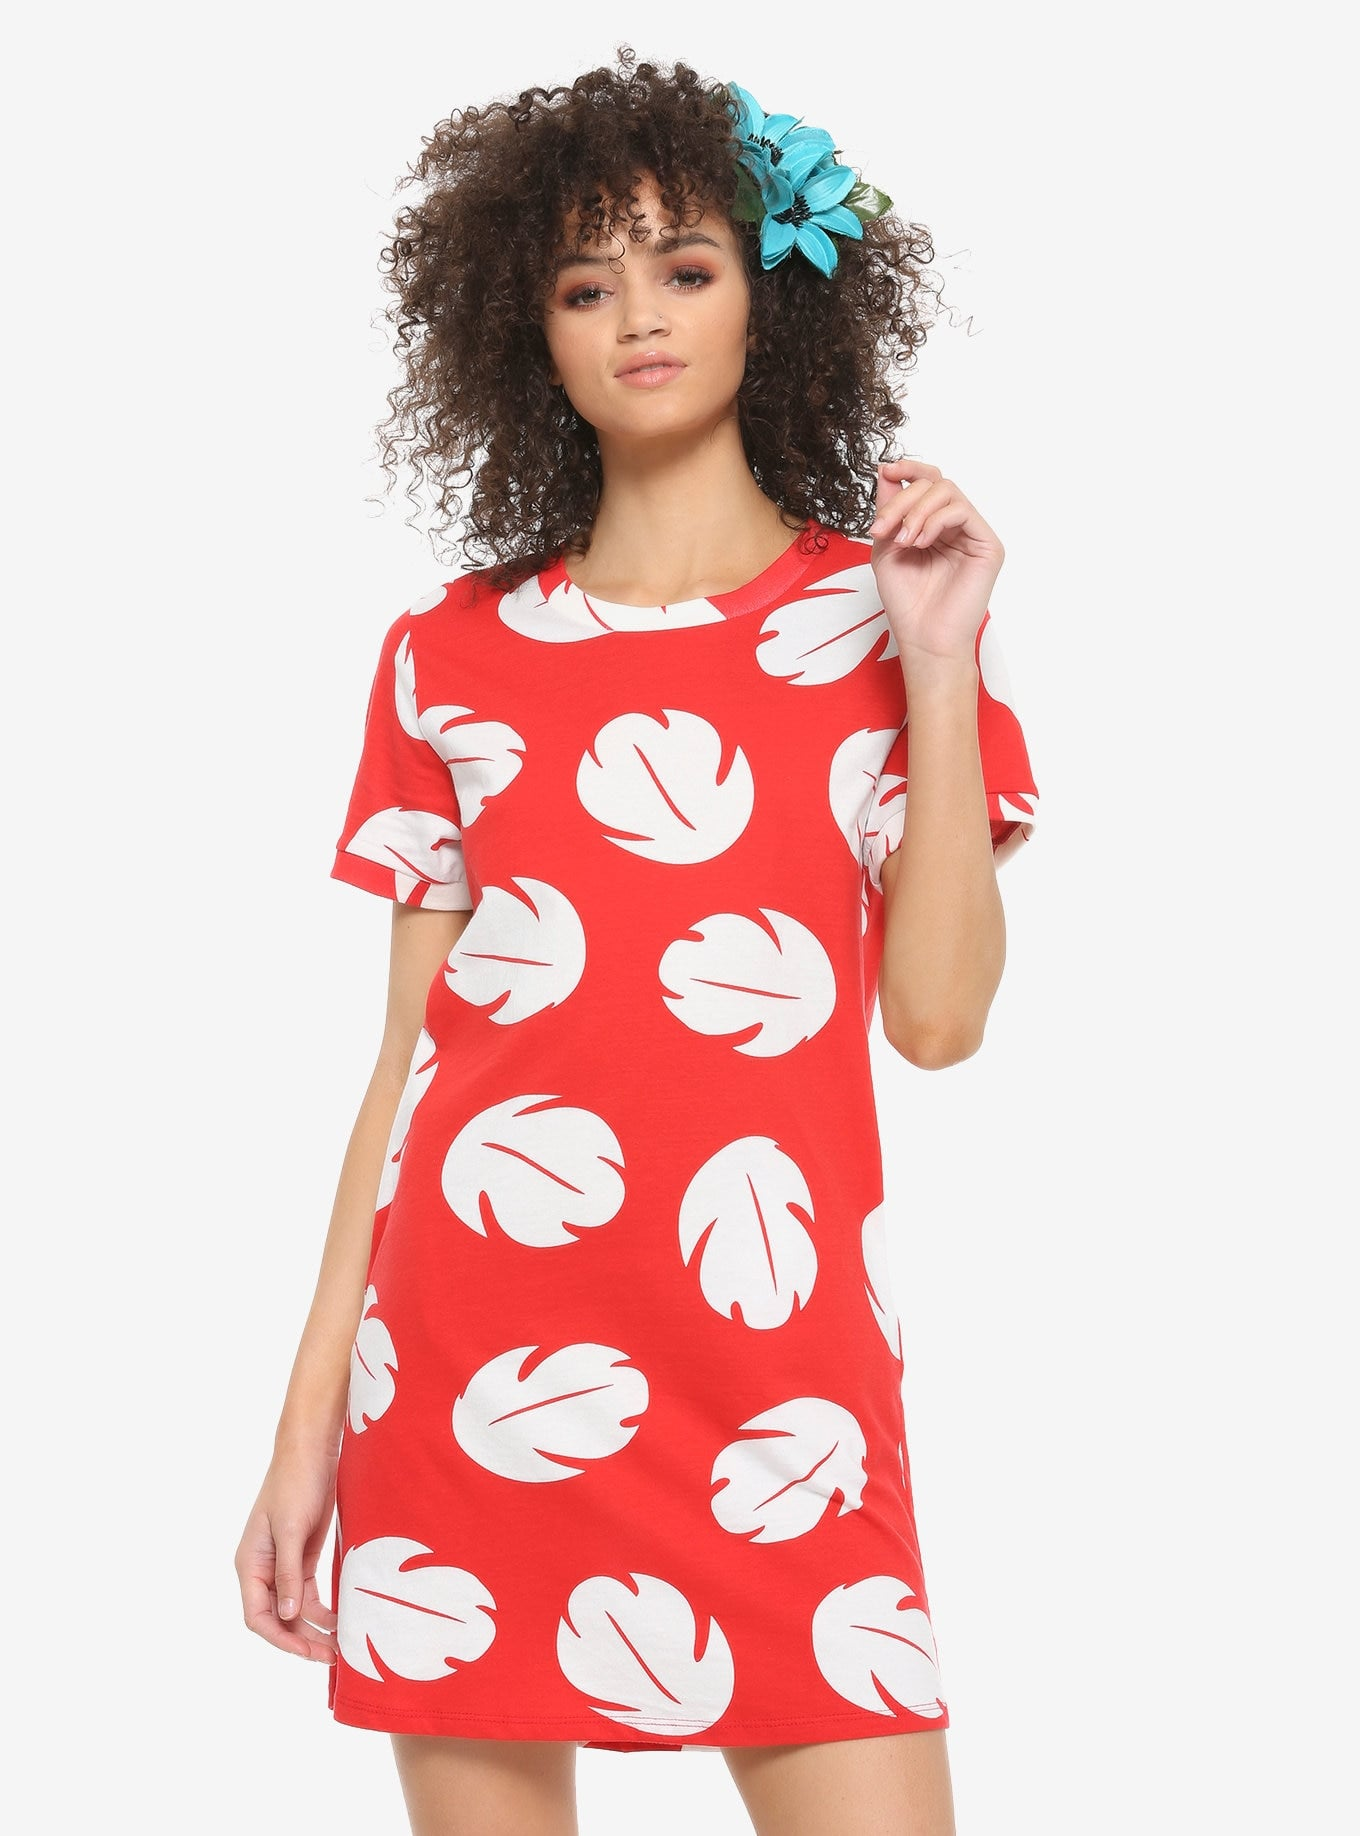 Disney Lilo Stitch Lilo T Shirt Dress Best Disney Halloween Costumes For Adults Popsugar Smart Living Photo 34